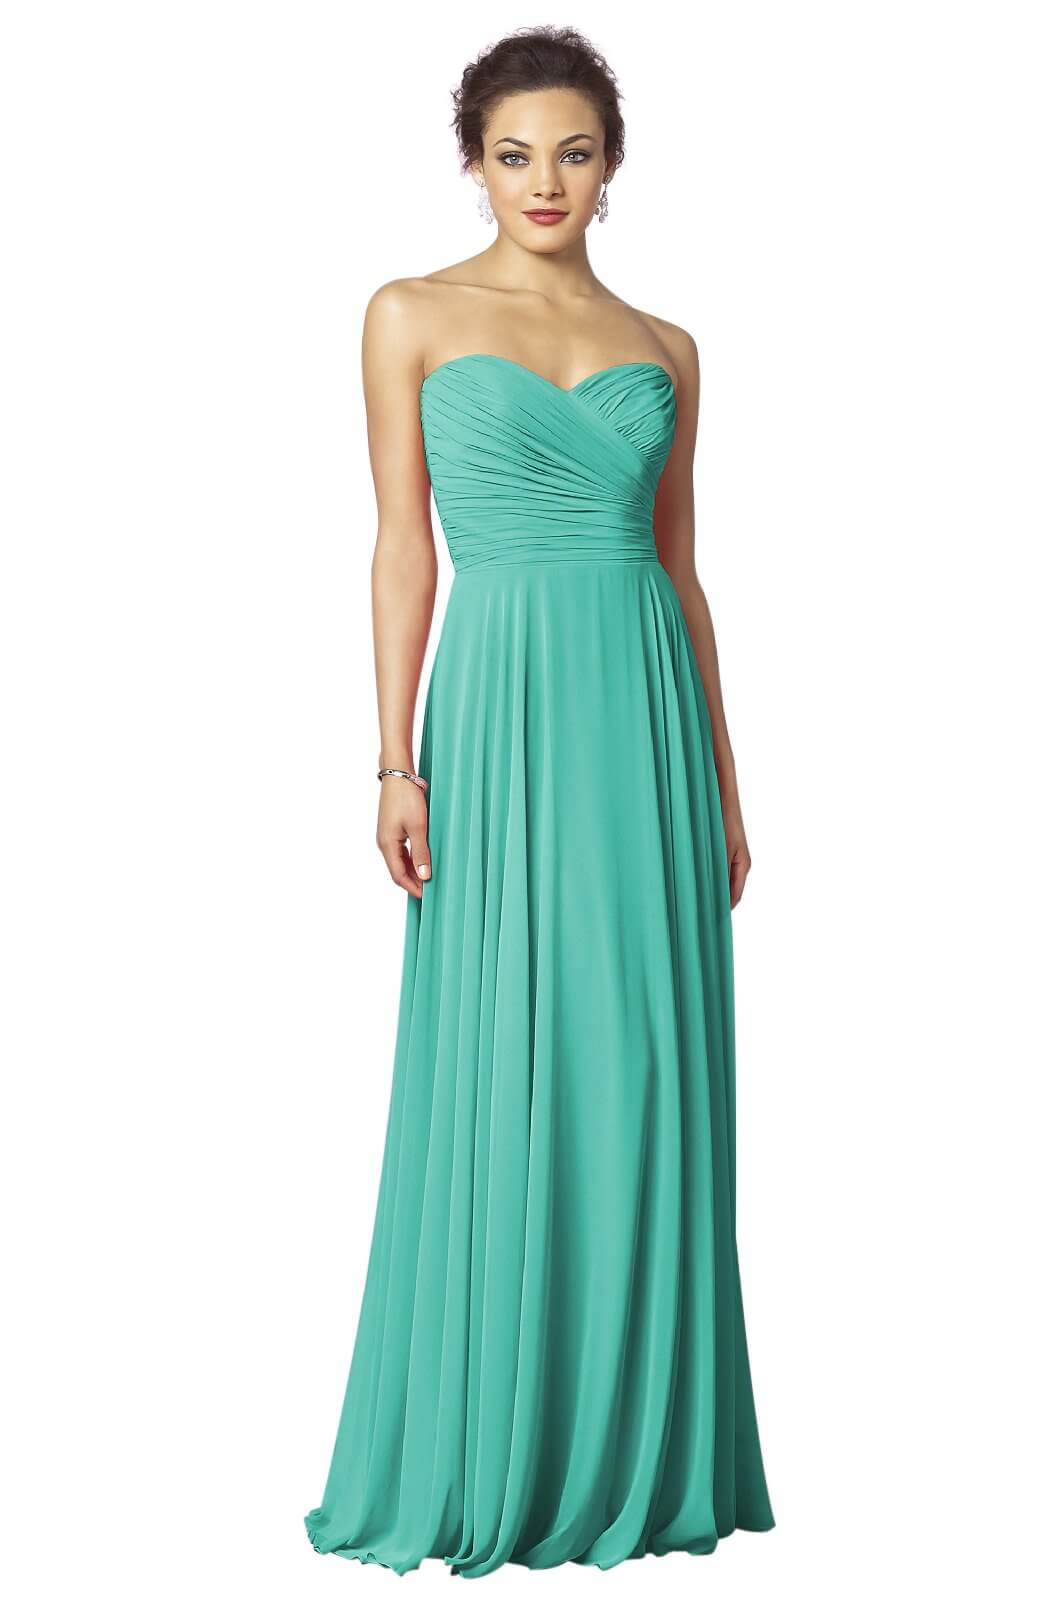 33 Most Beautiful Turquoise Bridesmaid Dresses: Teal Wedding Dresses S At Websimilar.org